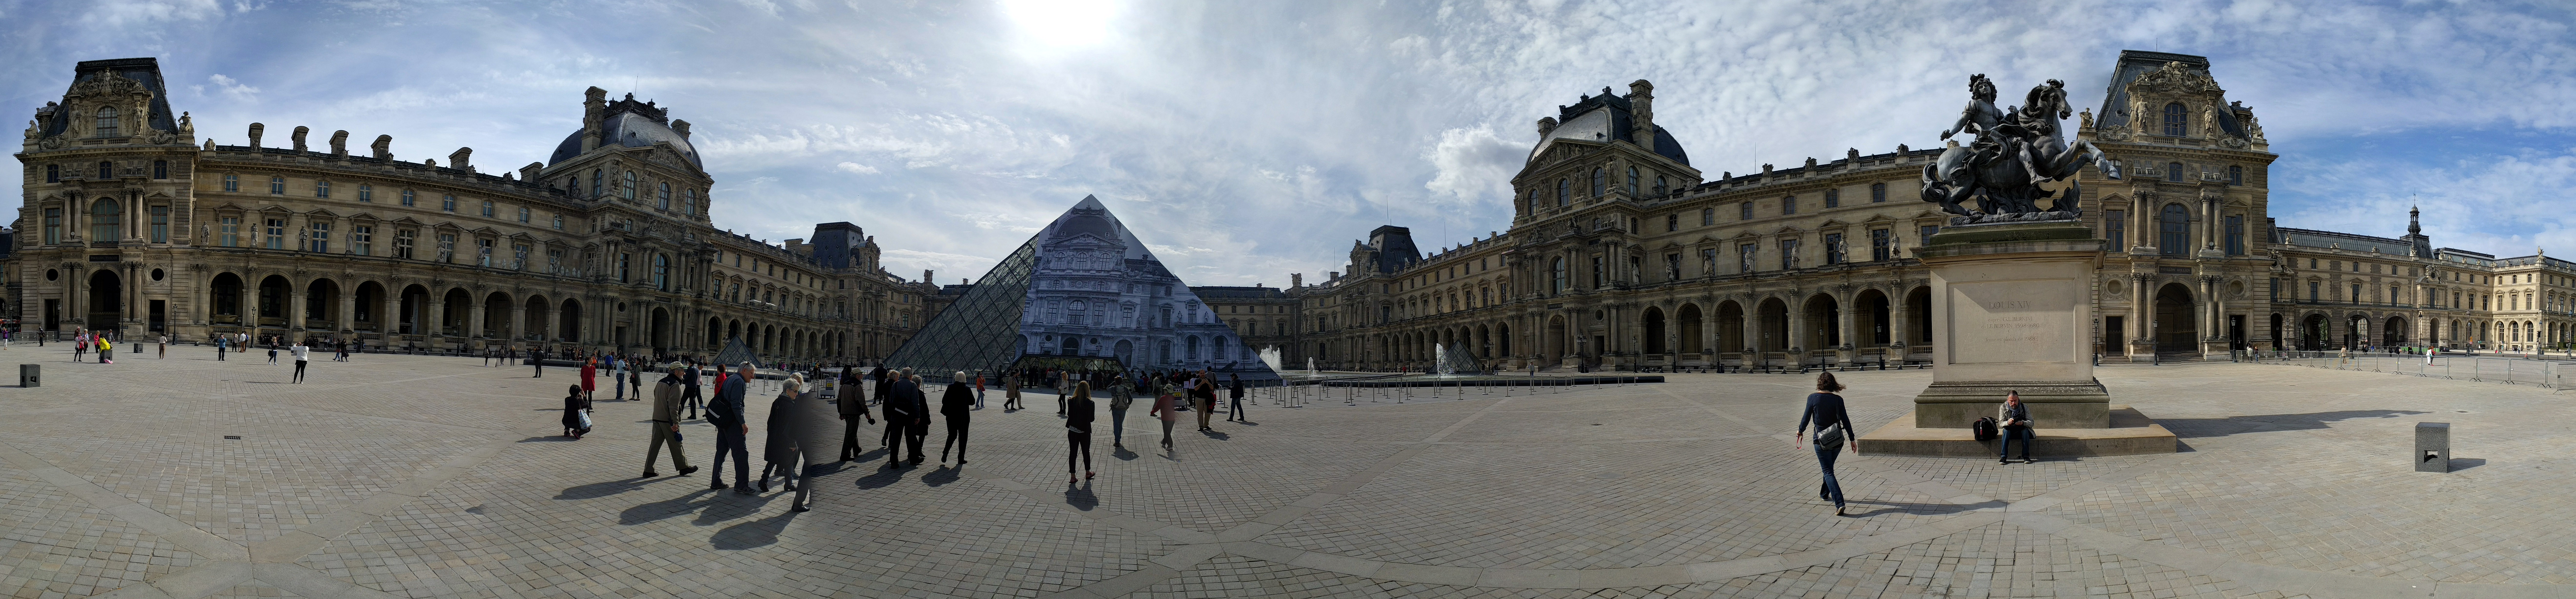 Welcome to the Louvre